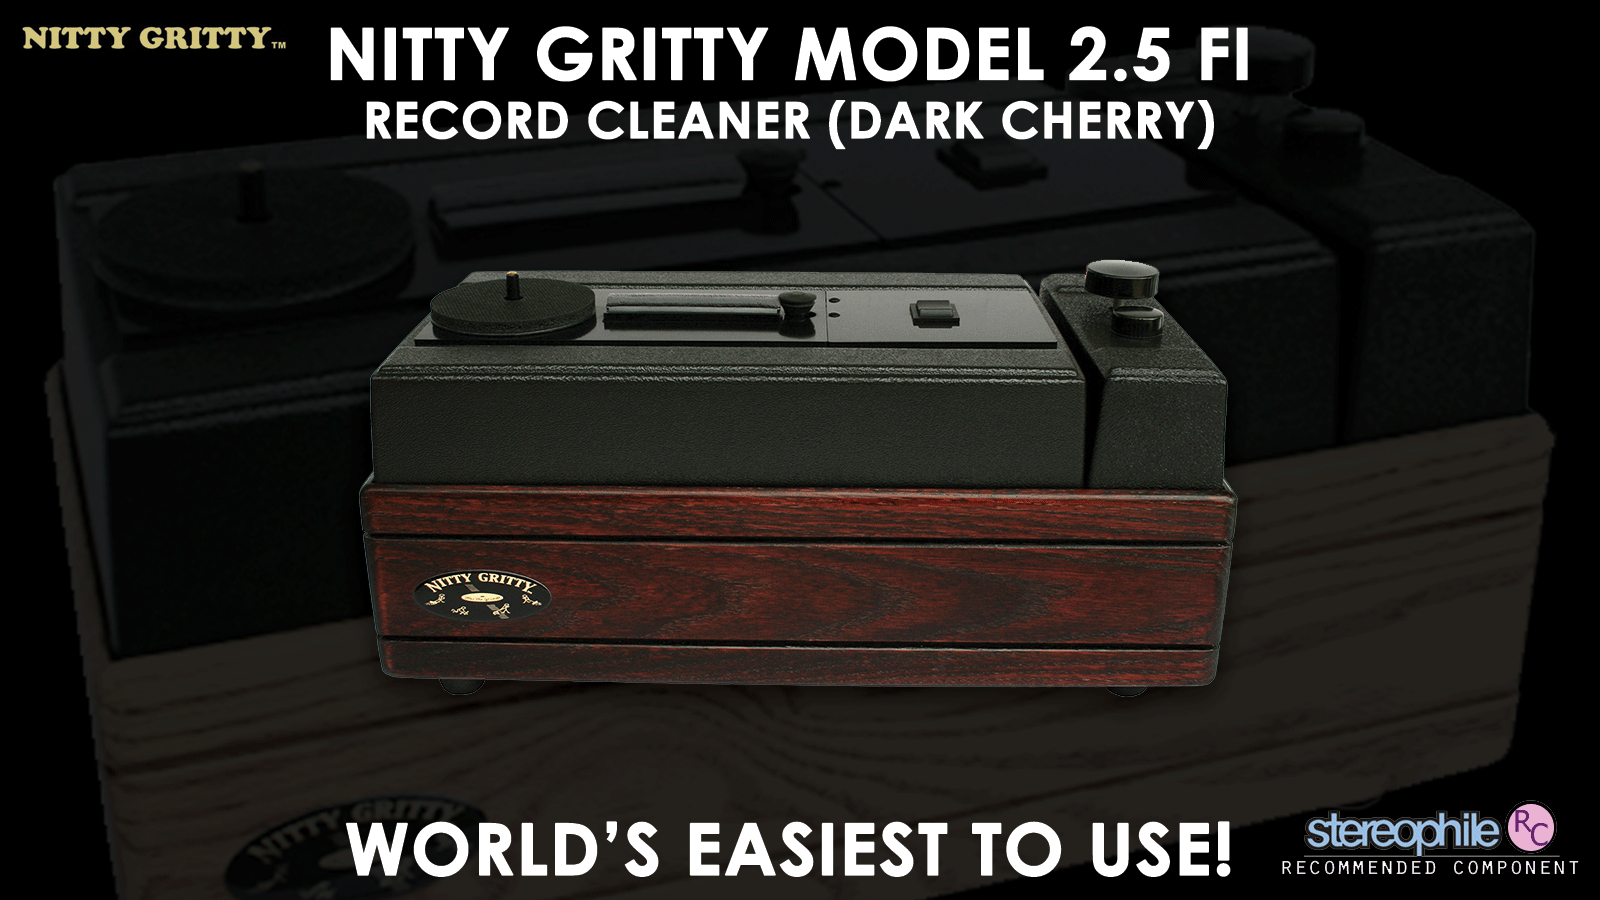 Nitty Gritty Model 2.5 Fi Record Cleaner